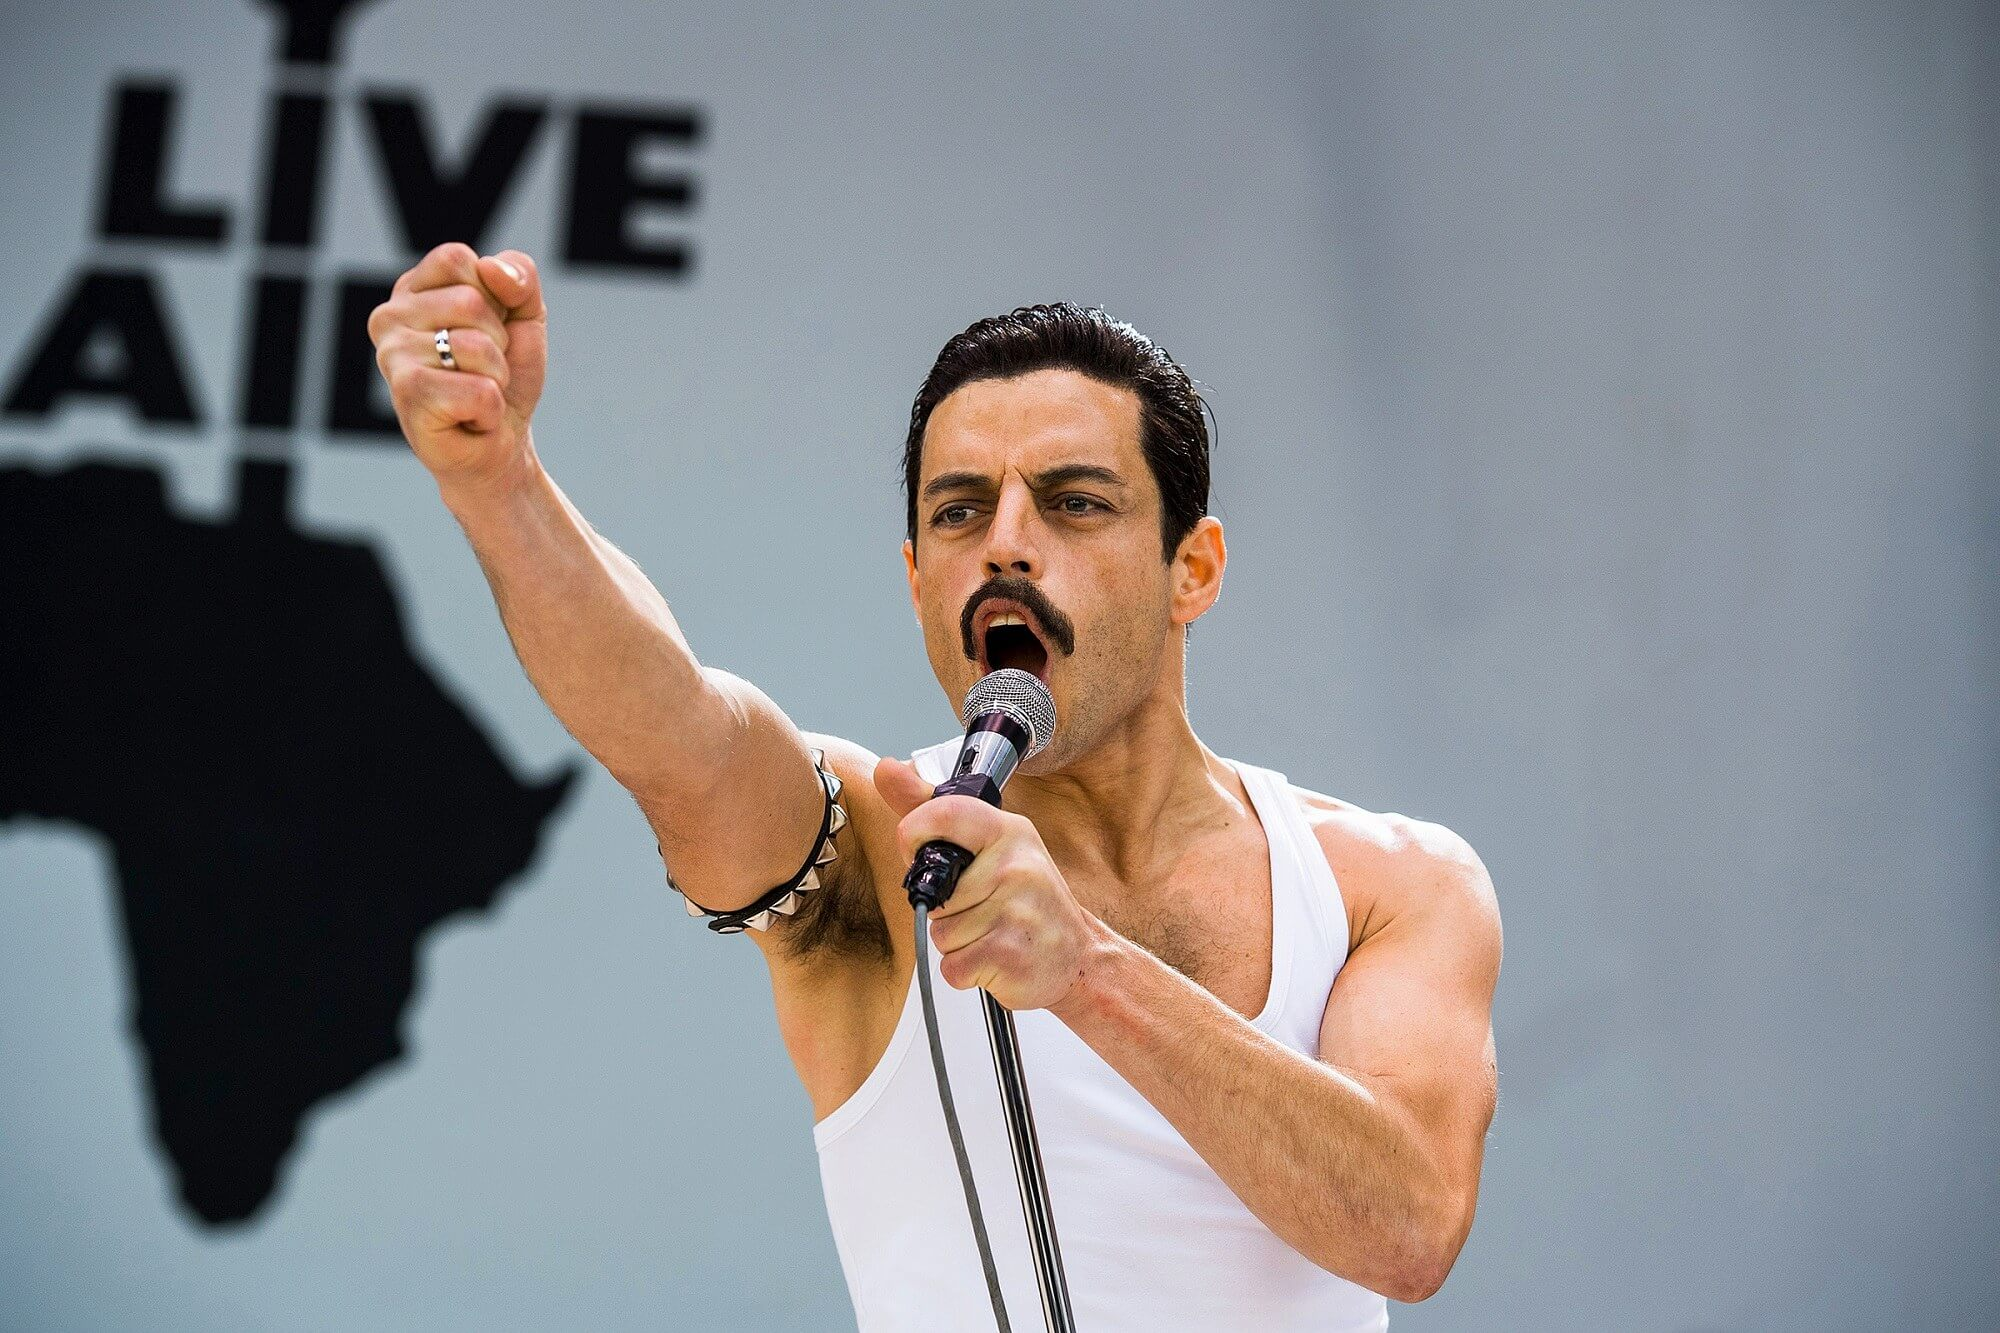 Bohemian Rhapsody's Blu-ray/DVD version to include full Live